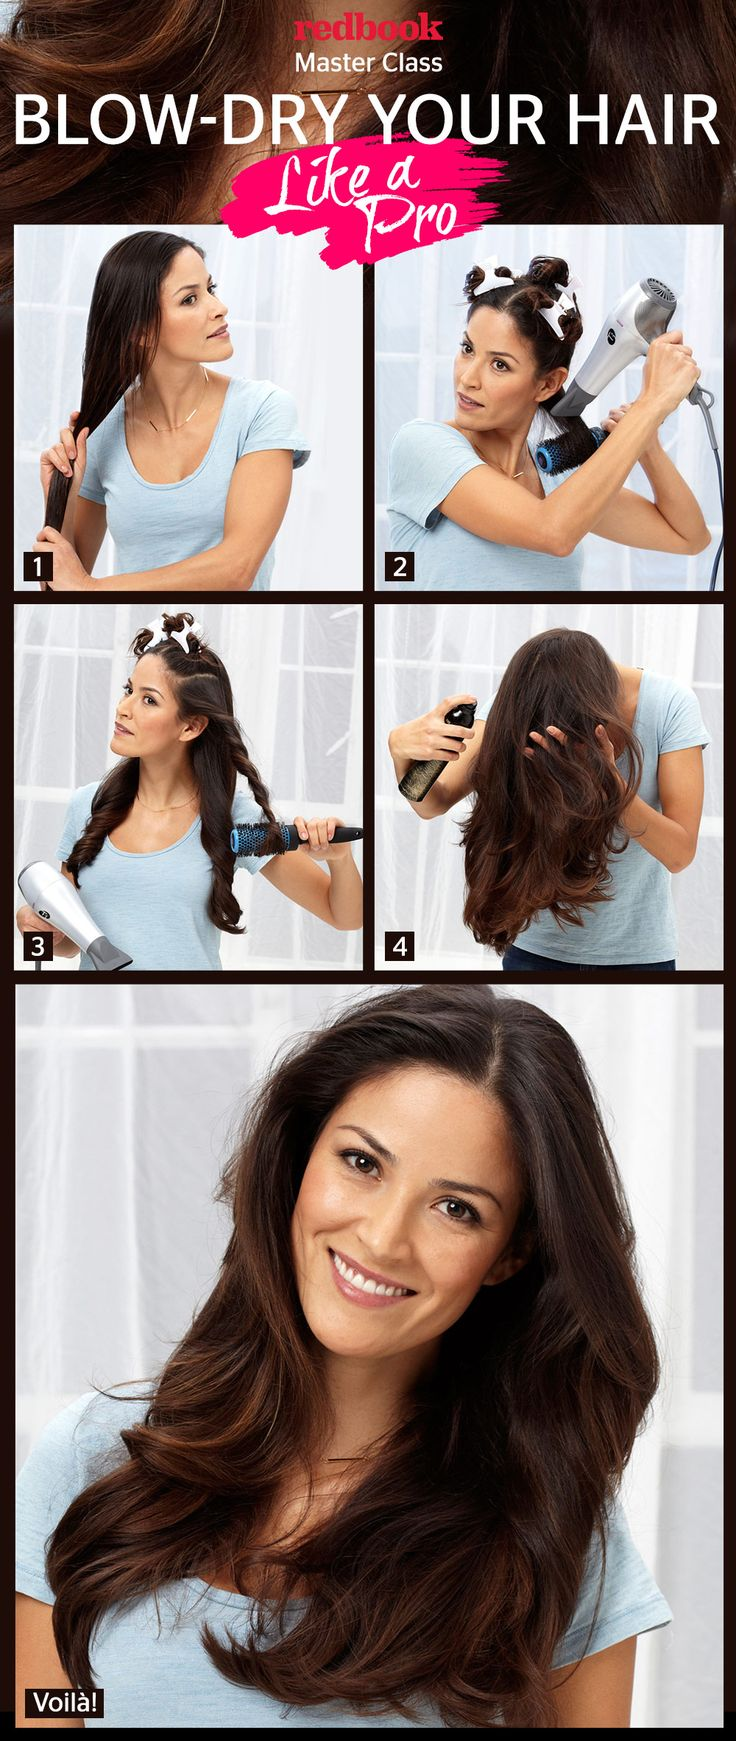 Hair tutorials for every length!